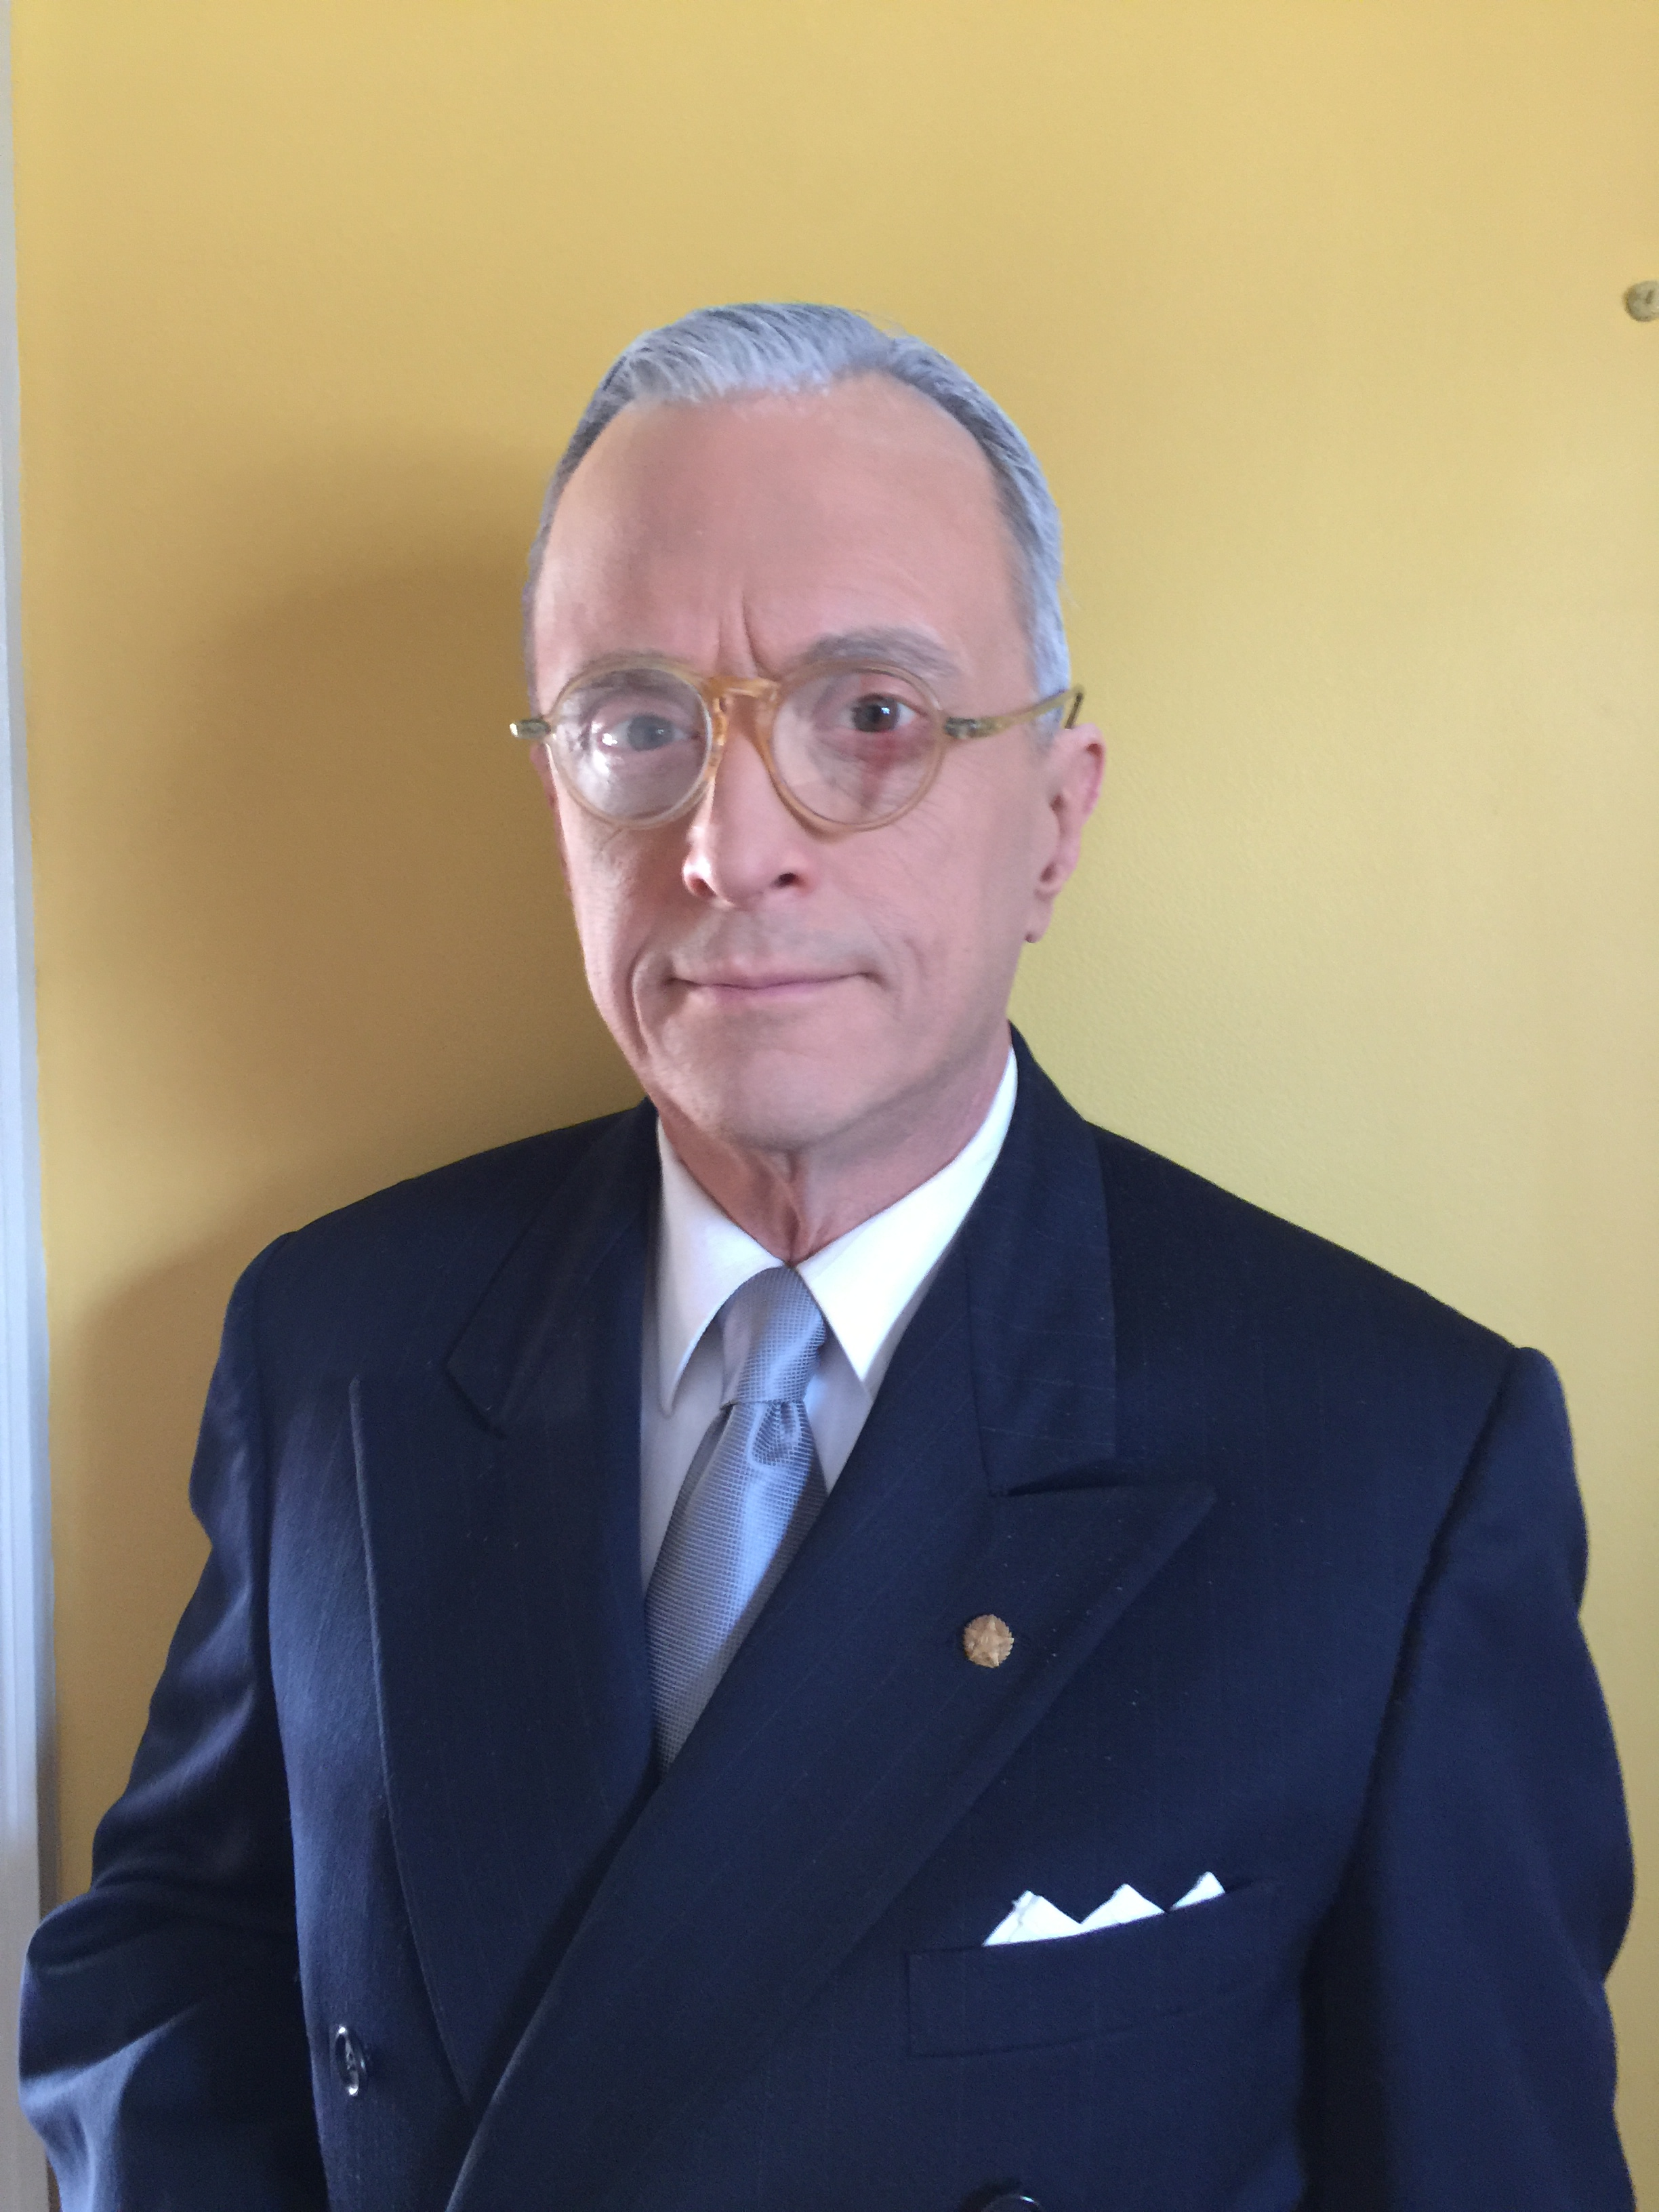 """David Lundy stars as Harry Truman in """"Give 'em Hell Harry"""" at New Phoenix Theatre."""